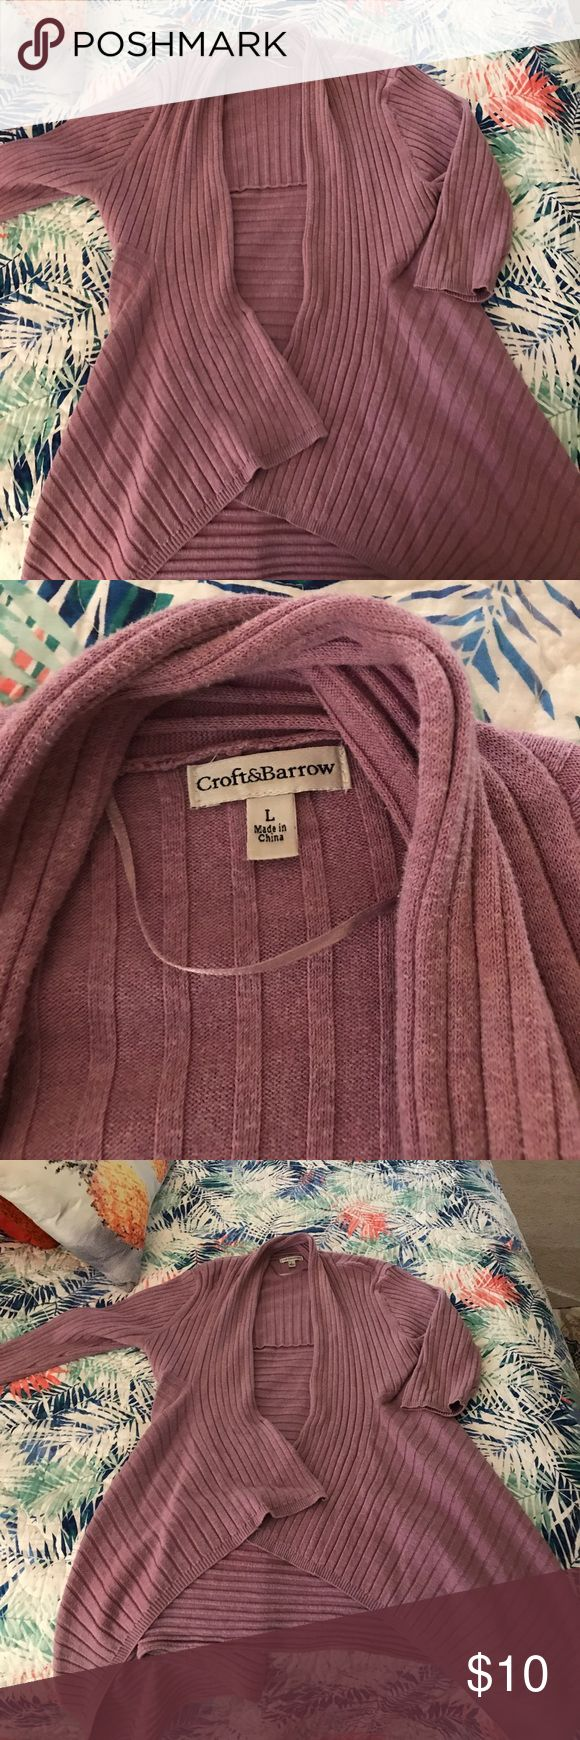 Mid length sweater Ladies mid length lavender sweater. Great asymmetrical lines. Three-quarter length sleeves. croft & barrow Sweaters Cardigans